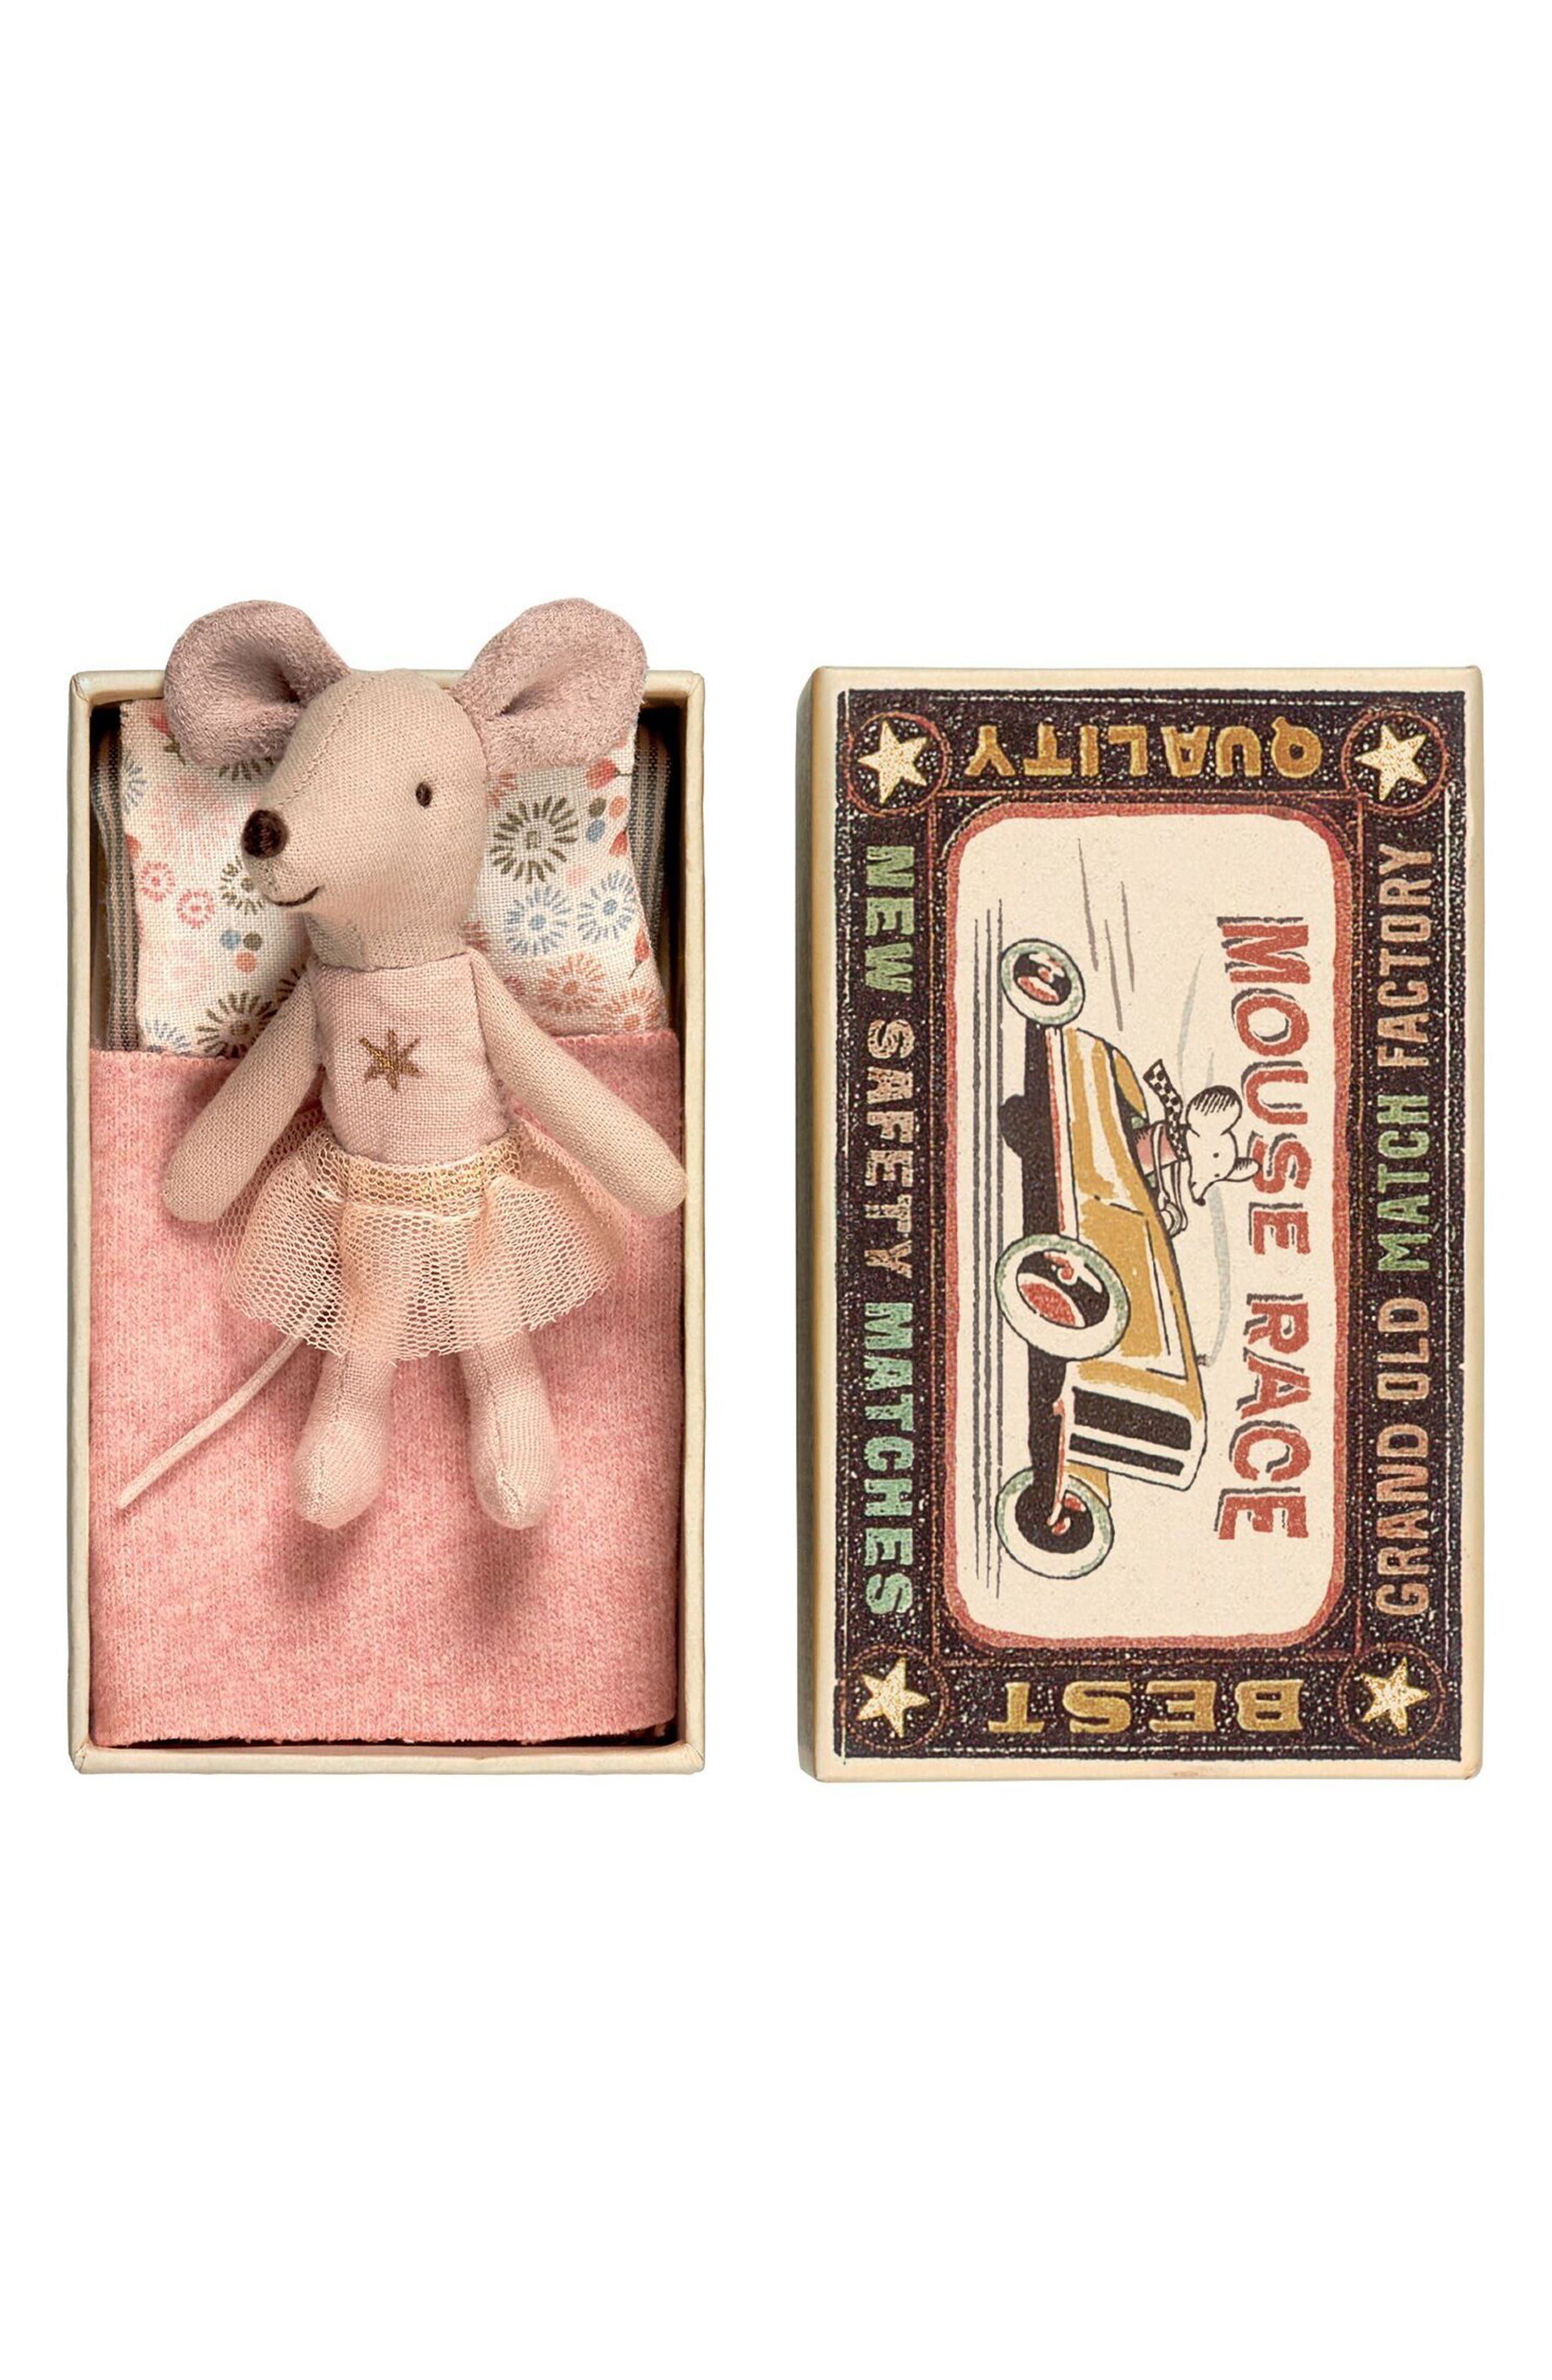 Little Sister Star Toy Mouse in a Box,                             Main thumbnail 1, color,                             Multi